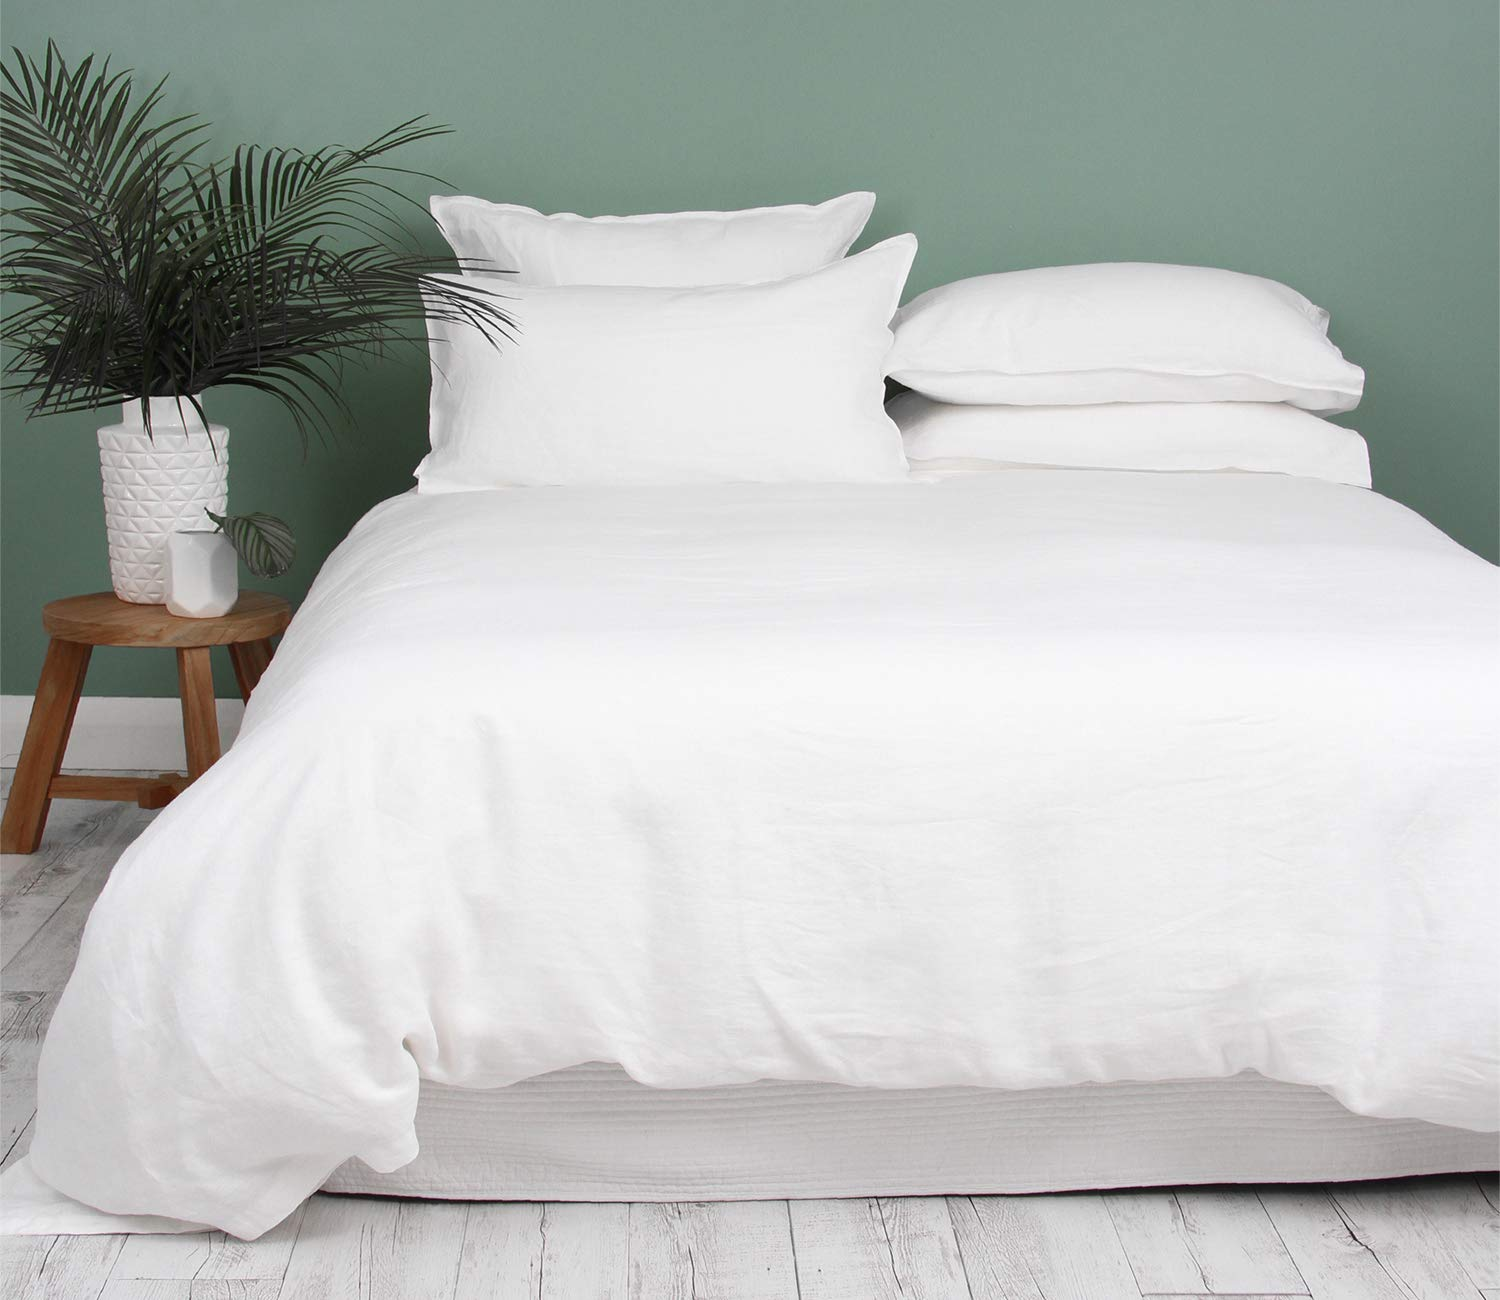 Kotton Culture 600 Thread Count 100% Organic Cotton Duvet Cover with Corner Ties & Zipper Closer Certified Luxurious, Durable and Hypoallergenic Ultra Soft (Twin/Twin XL, White) by Kotton Culture